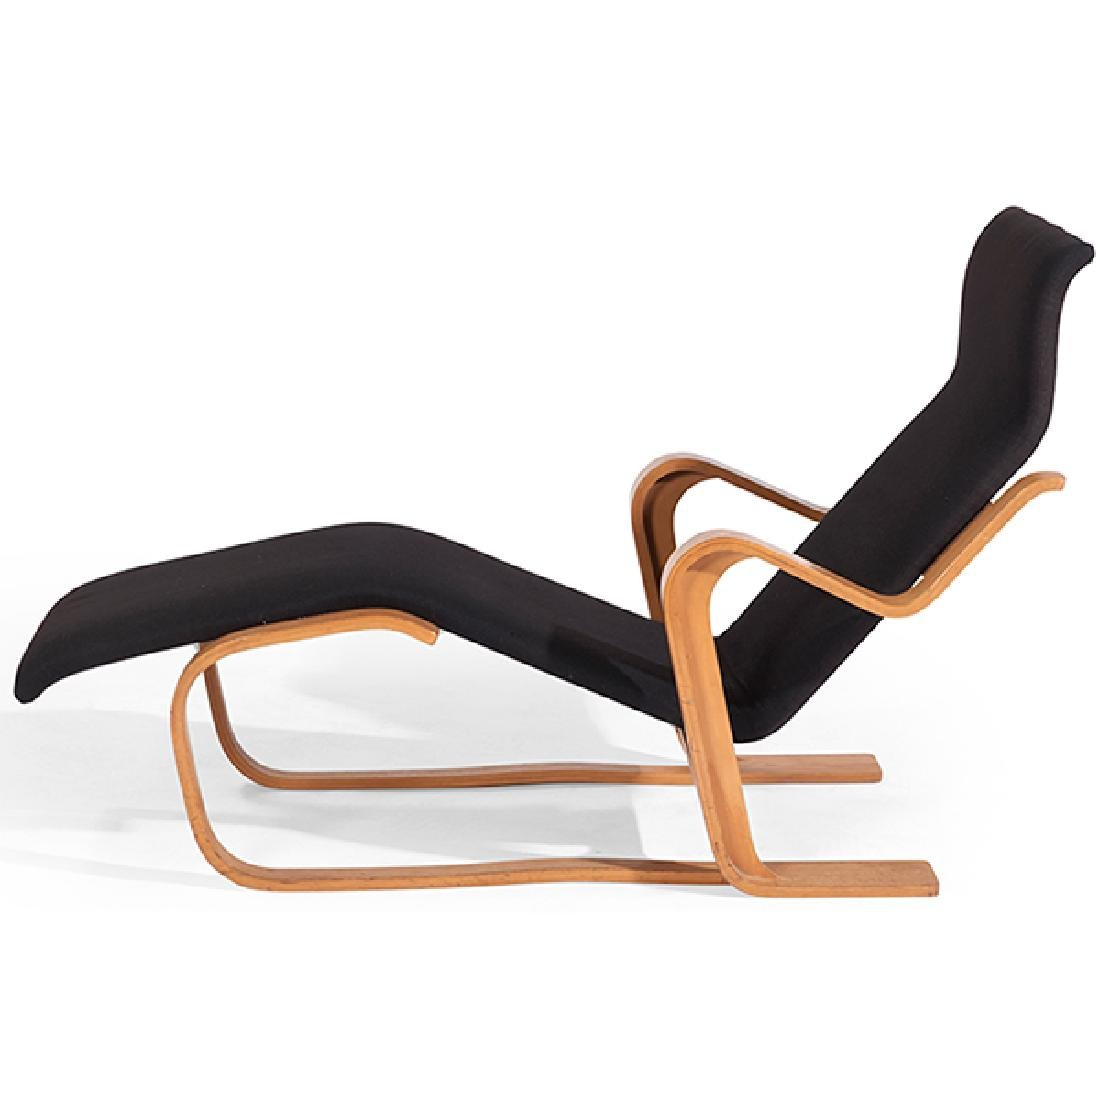 Marcel Breuer (1902-1981) for Knoll chaise lounge